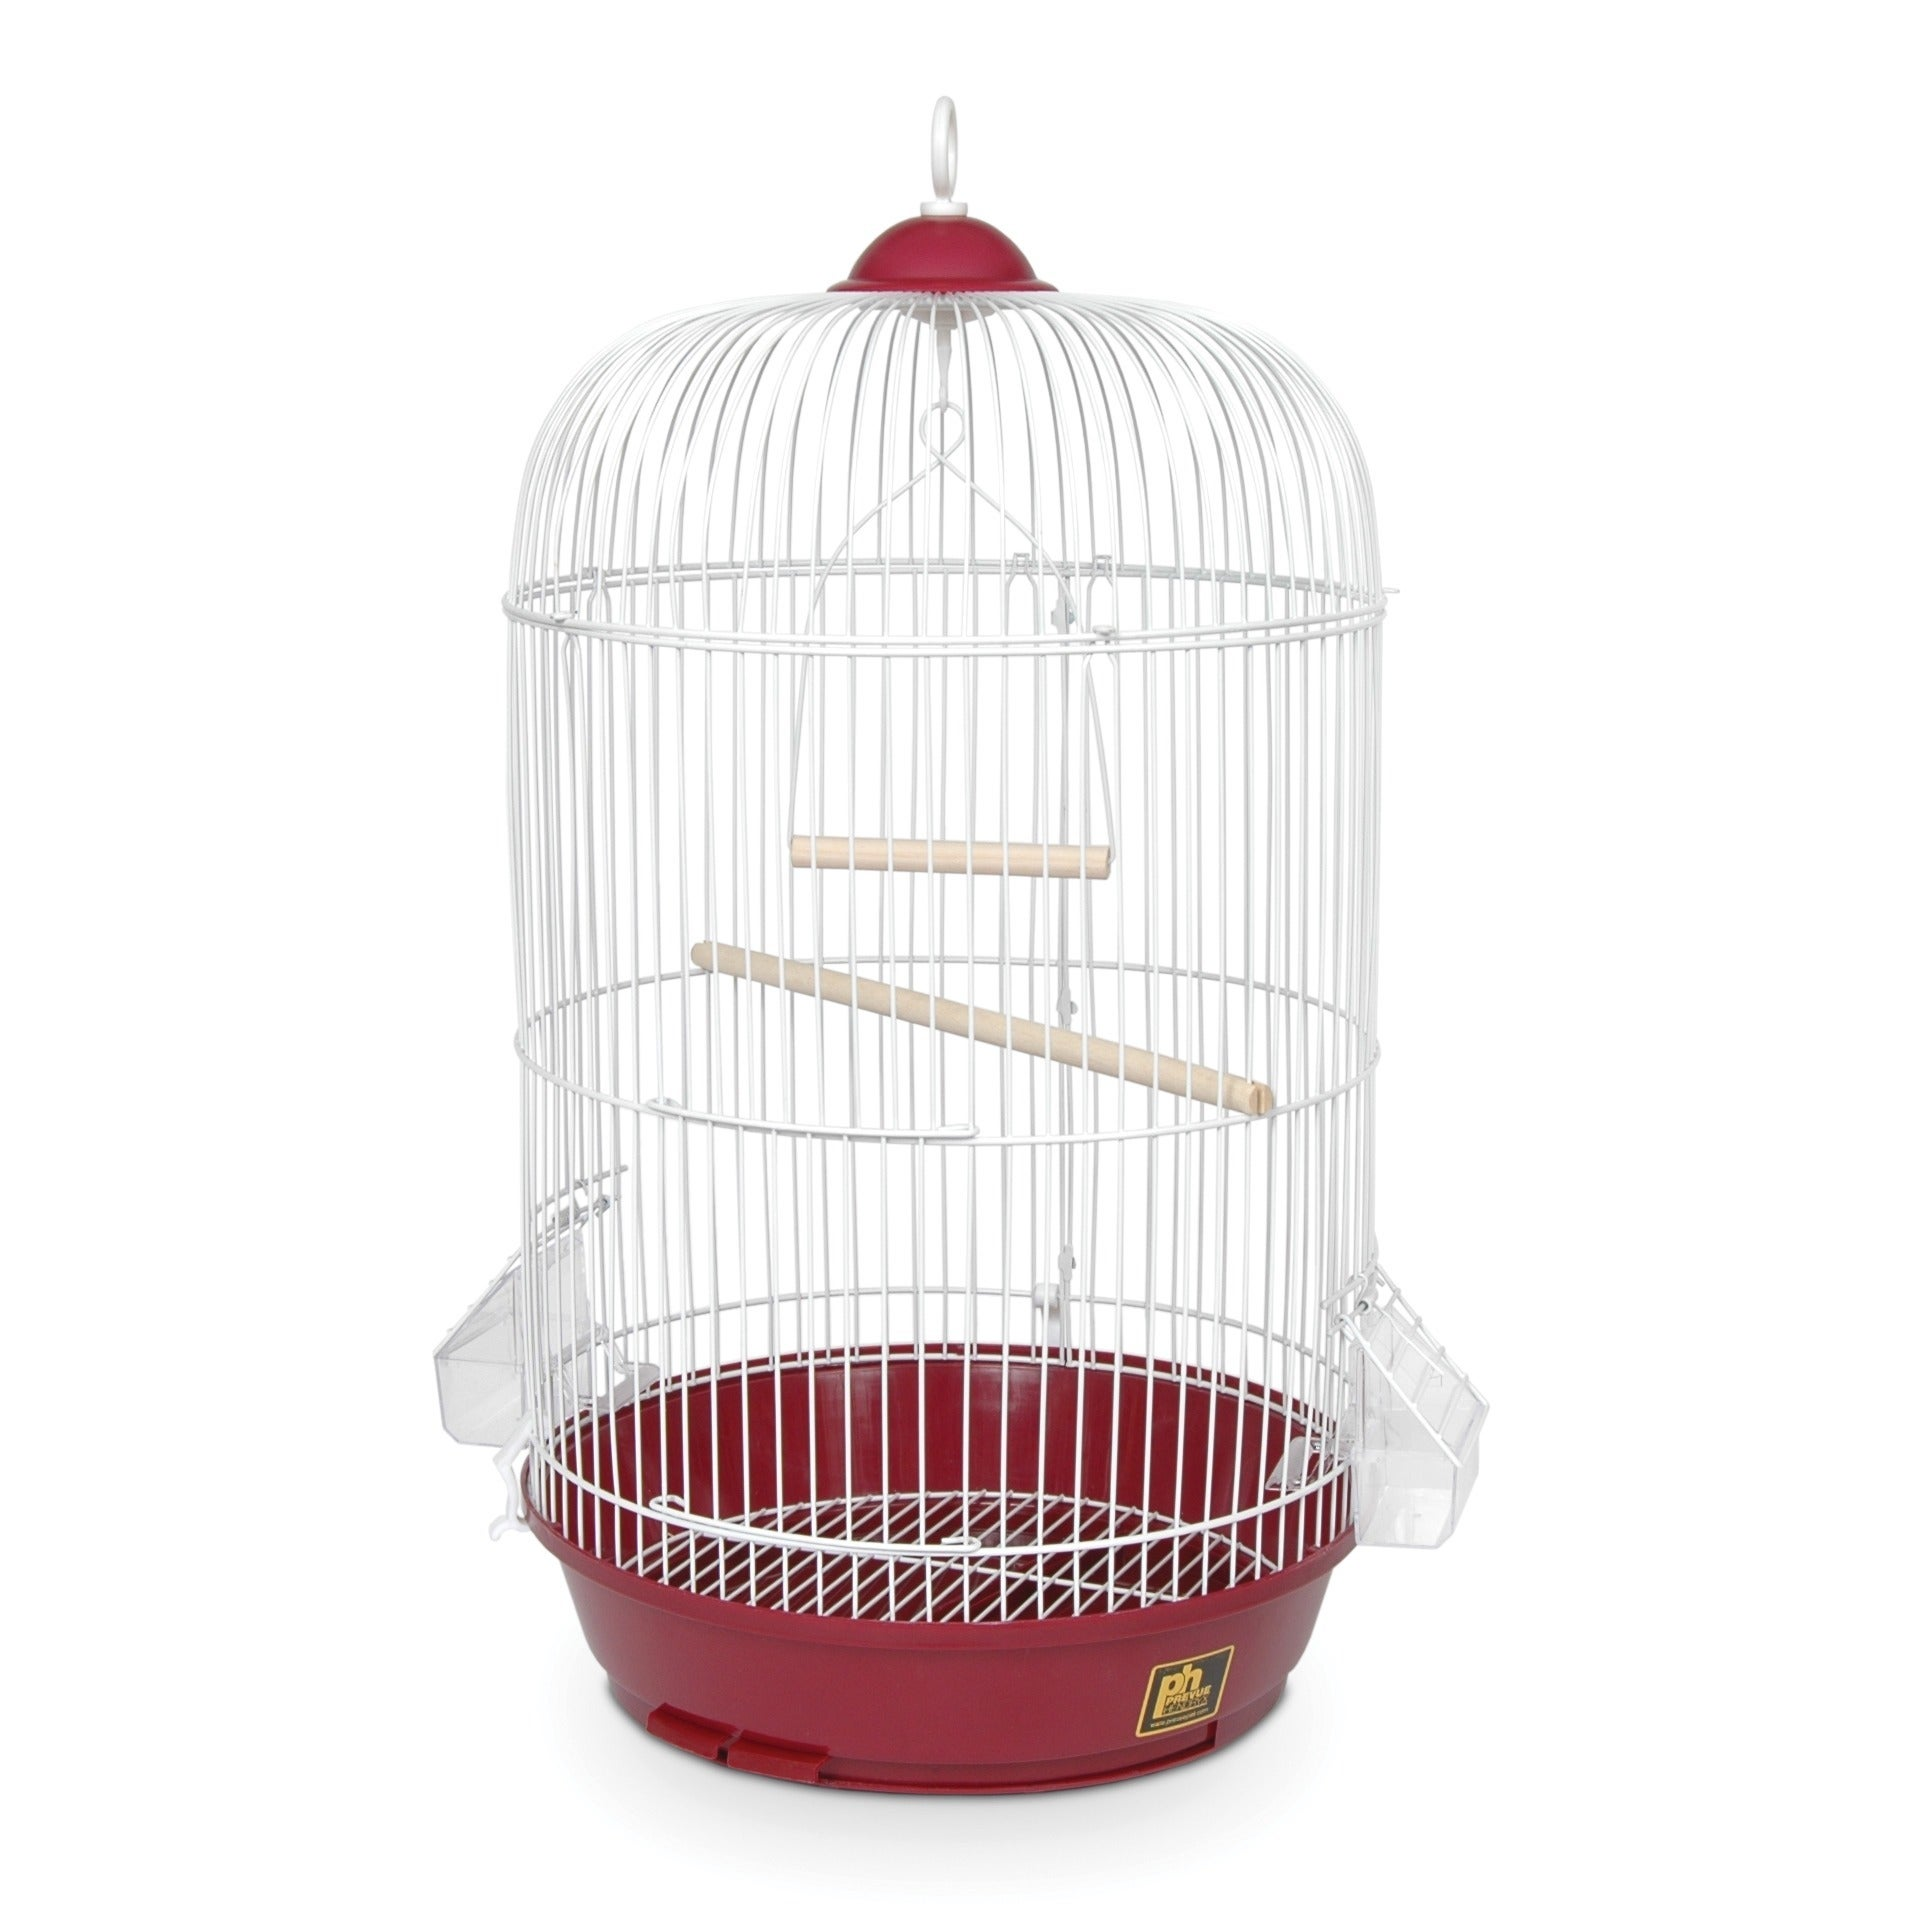 Prevue Pet Products Classic Red Round Bird Cage (Red)